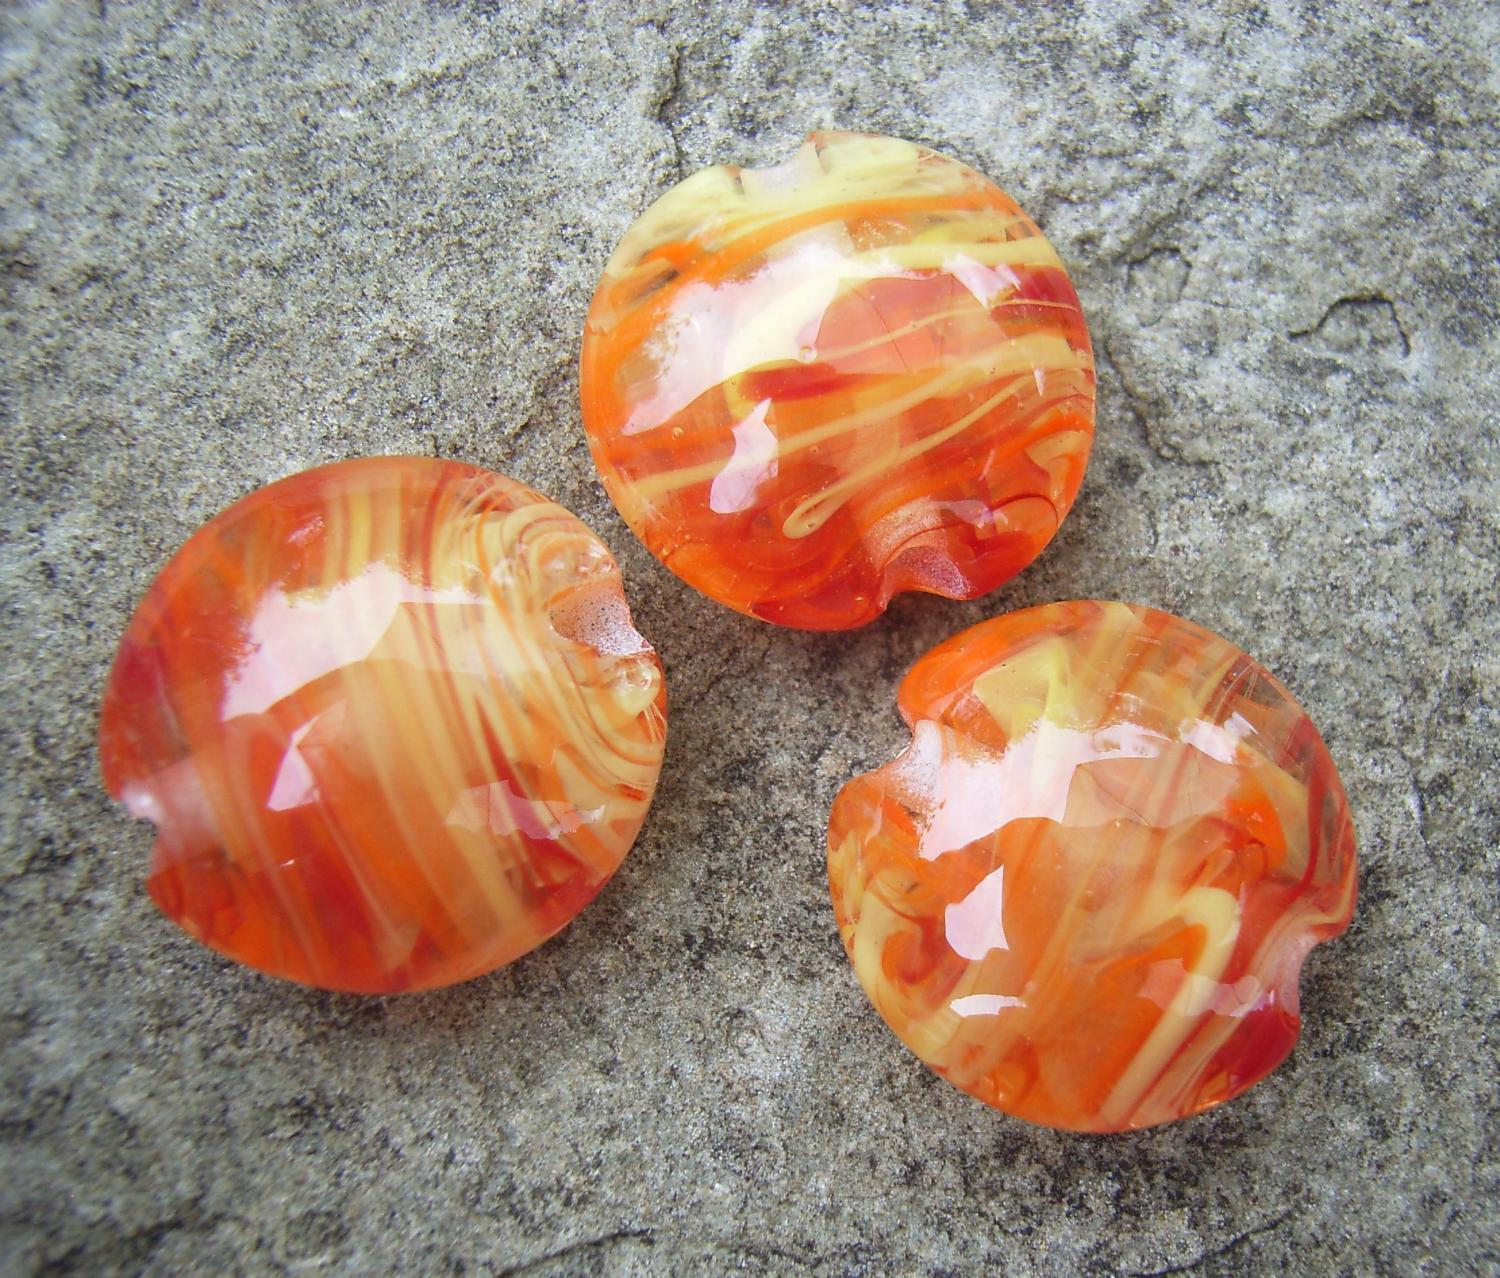 Red, Orange, Yellow Filigrana 18mm Lentil Handmade Artisan Glass Lampwork Beads - By the Bead, (Made to Order)